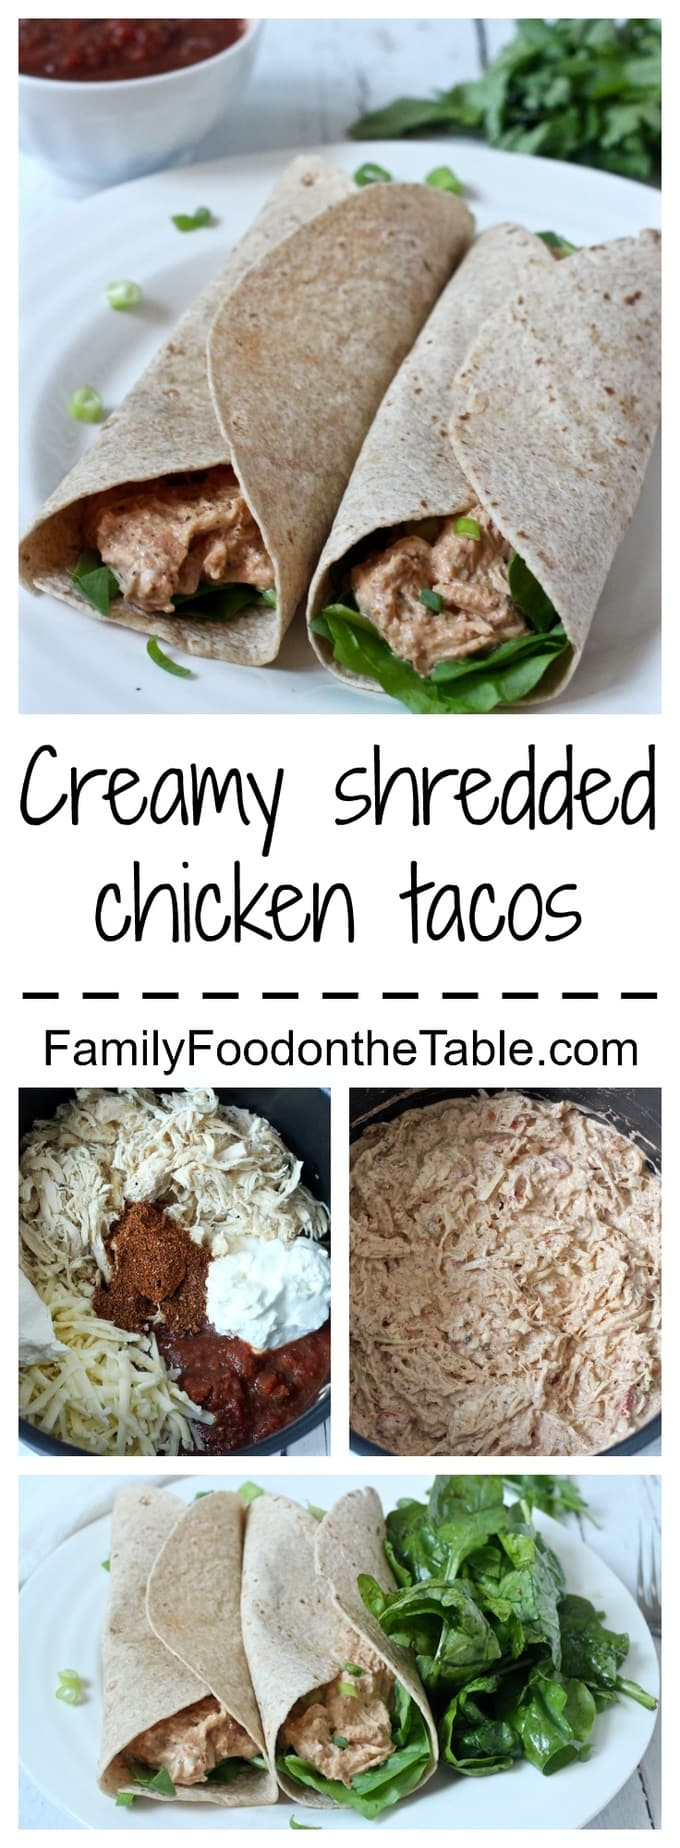 A creamy sauce coats shredded chicken in this 10-minute taco dinner! | FamilyFoodontheTable.com